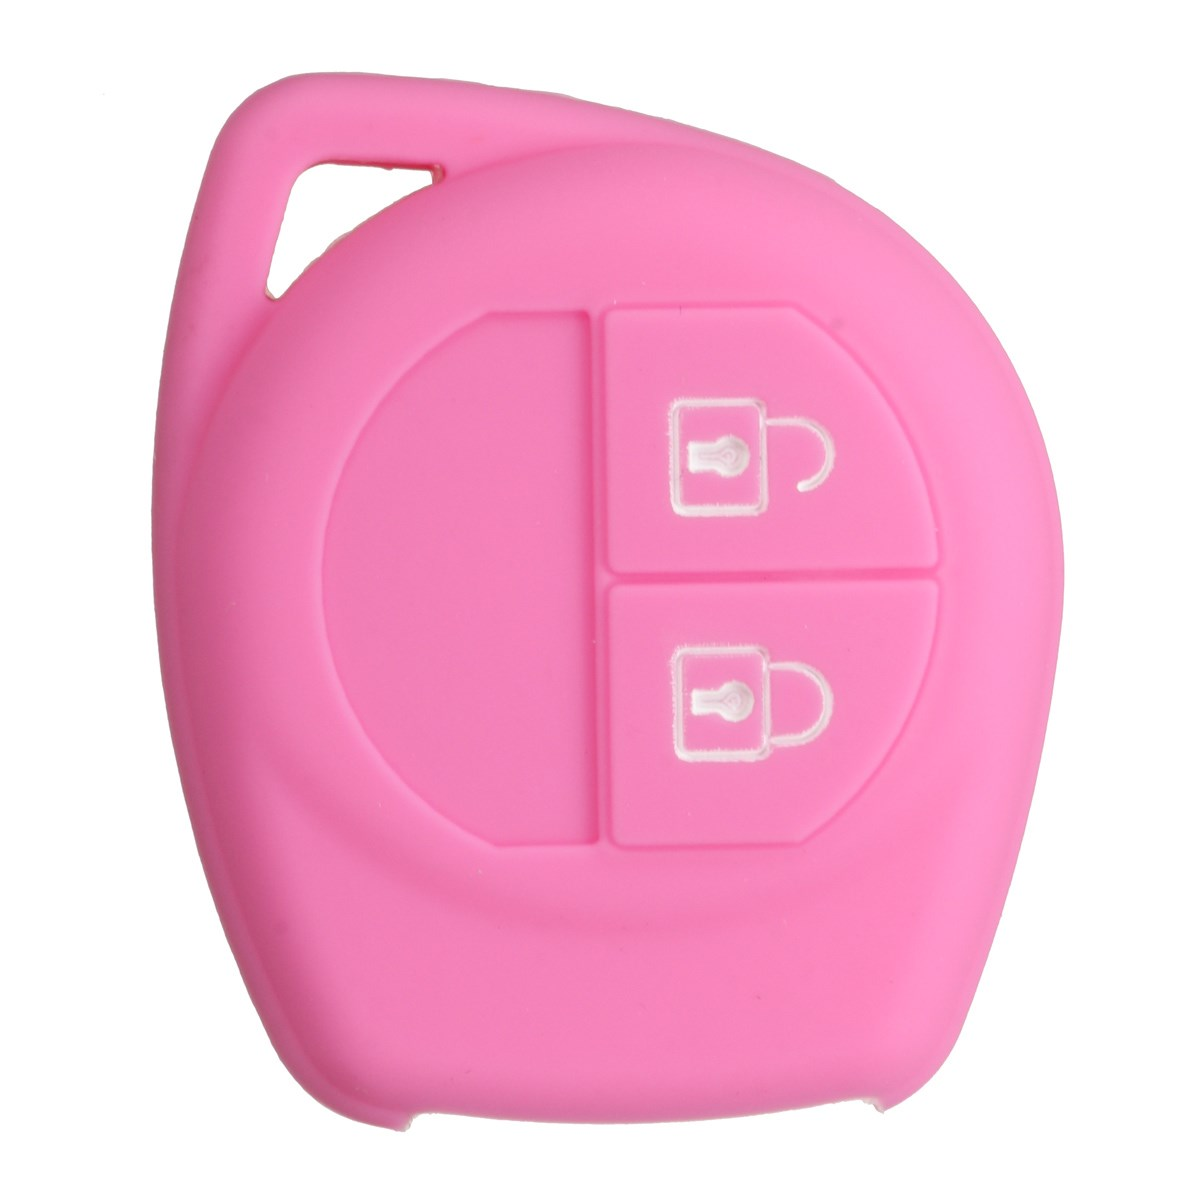 Image 4 - 16 Color Silicone 2 Button Remote Key Case Fob Protect Cover For Suzuki /SX4 /Swift /Vitara-in Key Case for Car from Automobiles & Motorcycles